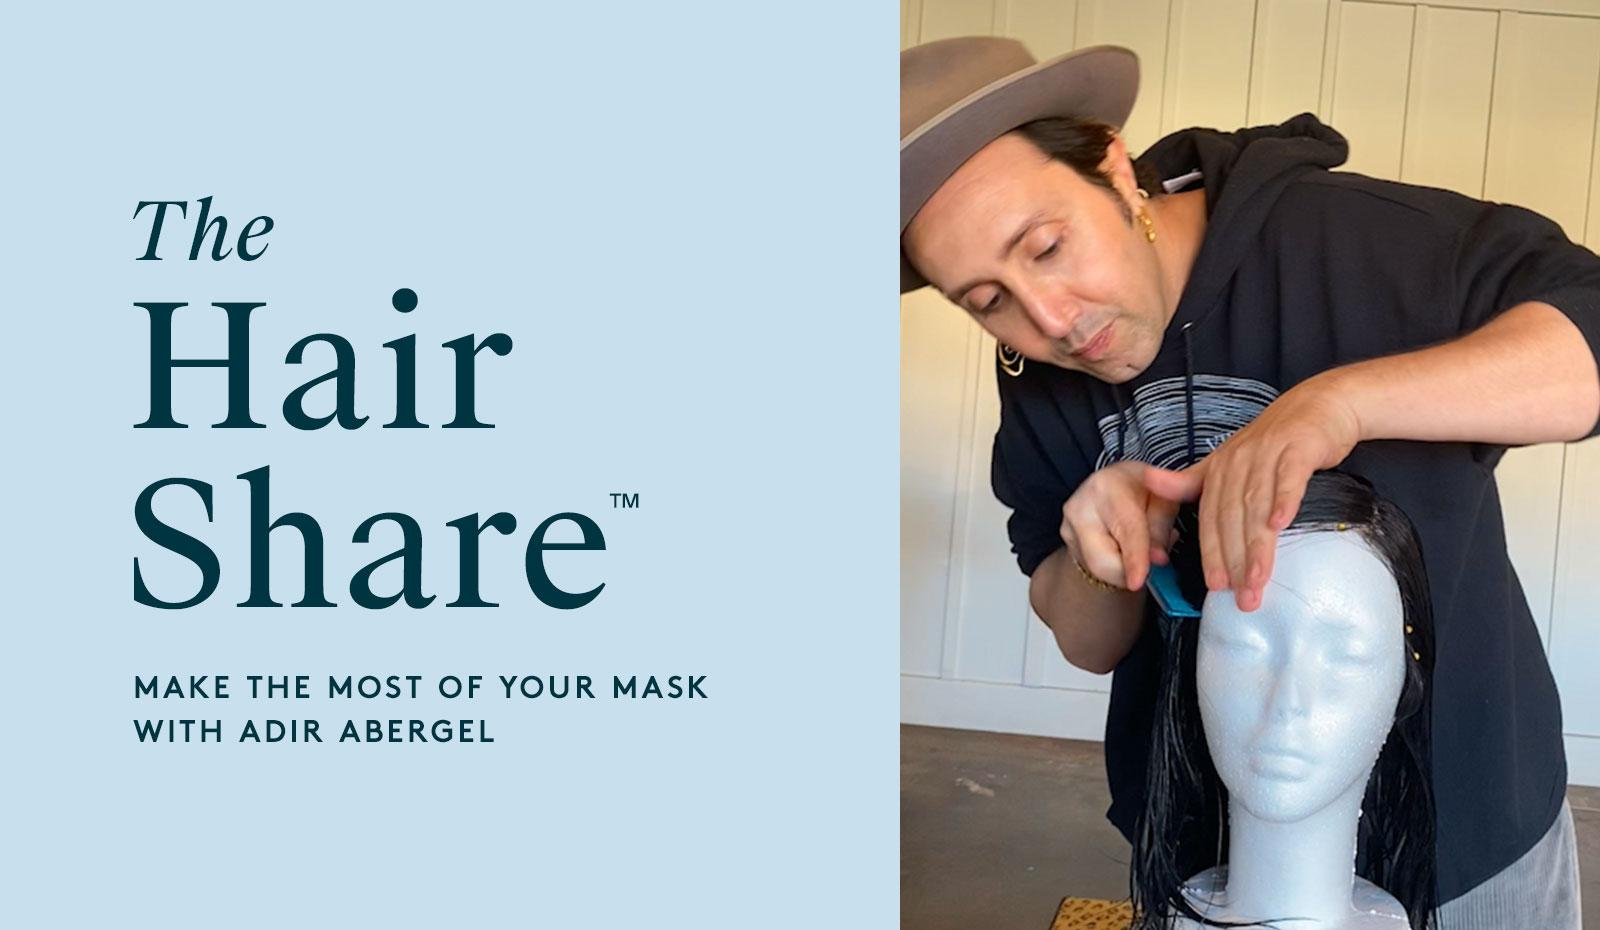 The Hair Share®: Make the Most of Your Mask With Adir Abergel